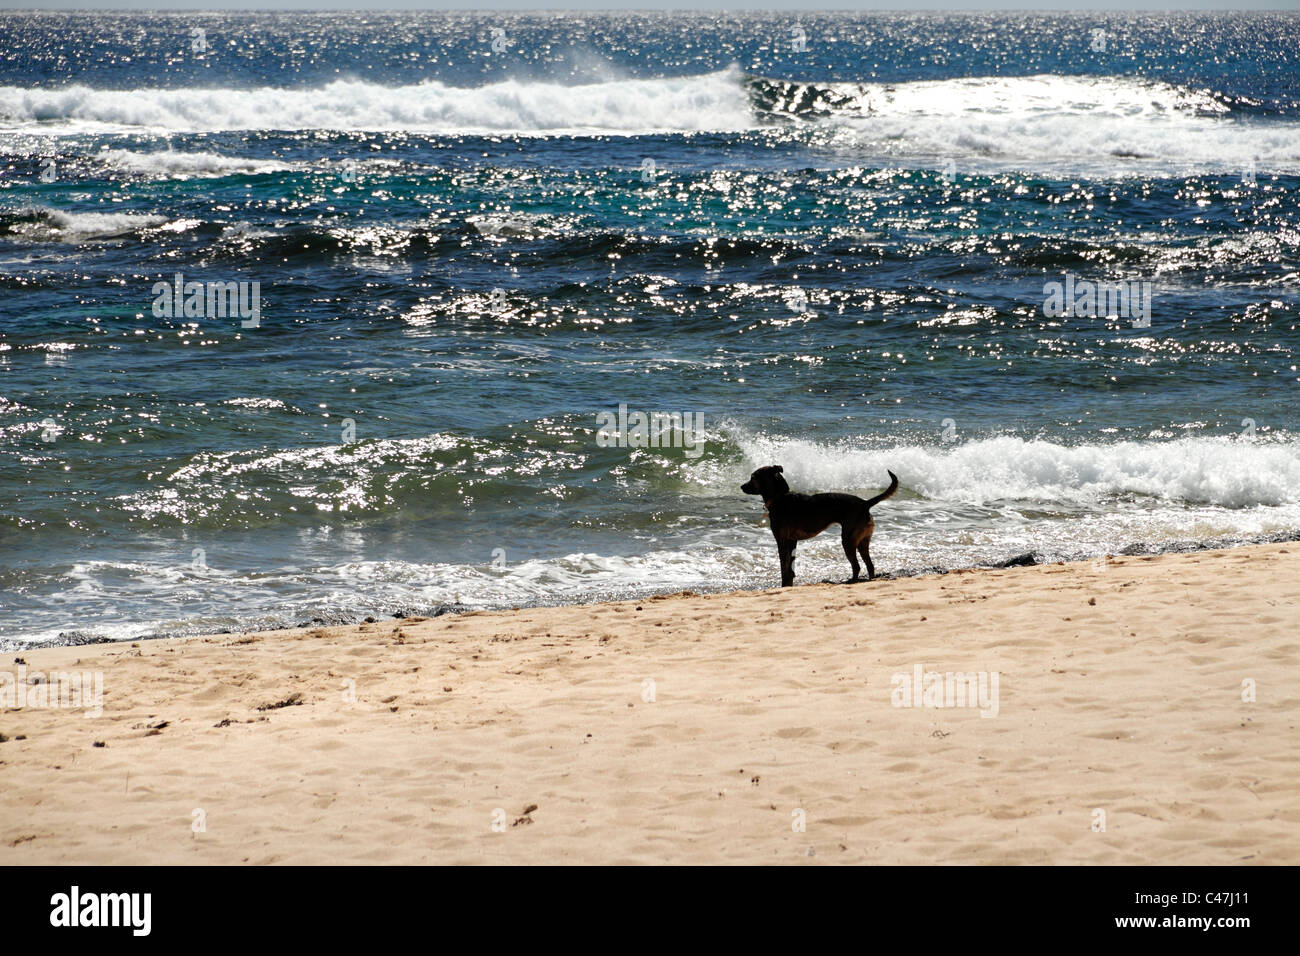 Dog on beach watching the ocean waves Stock Photo